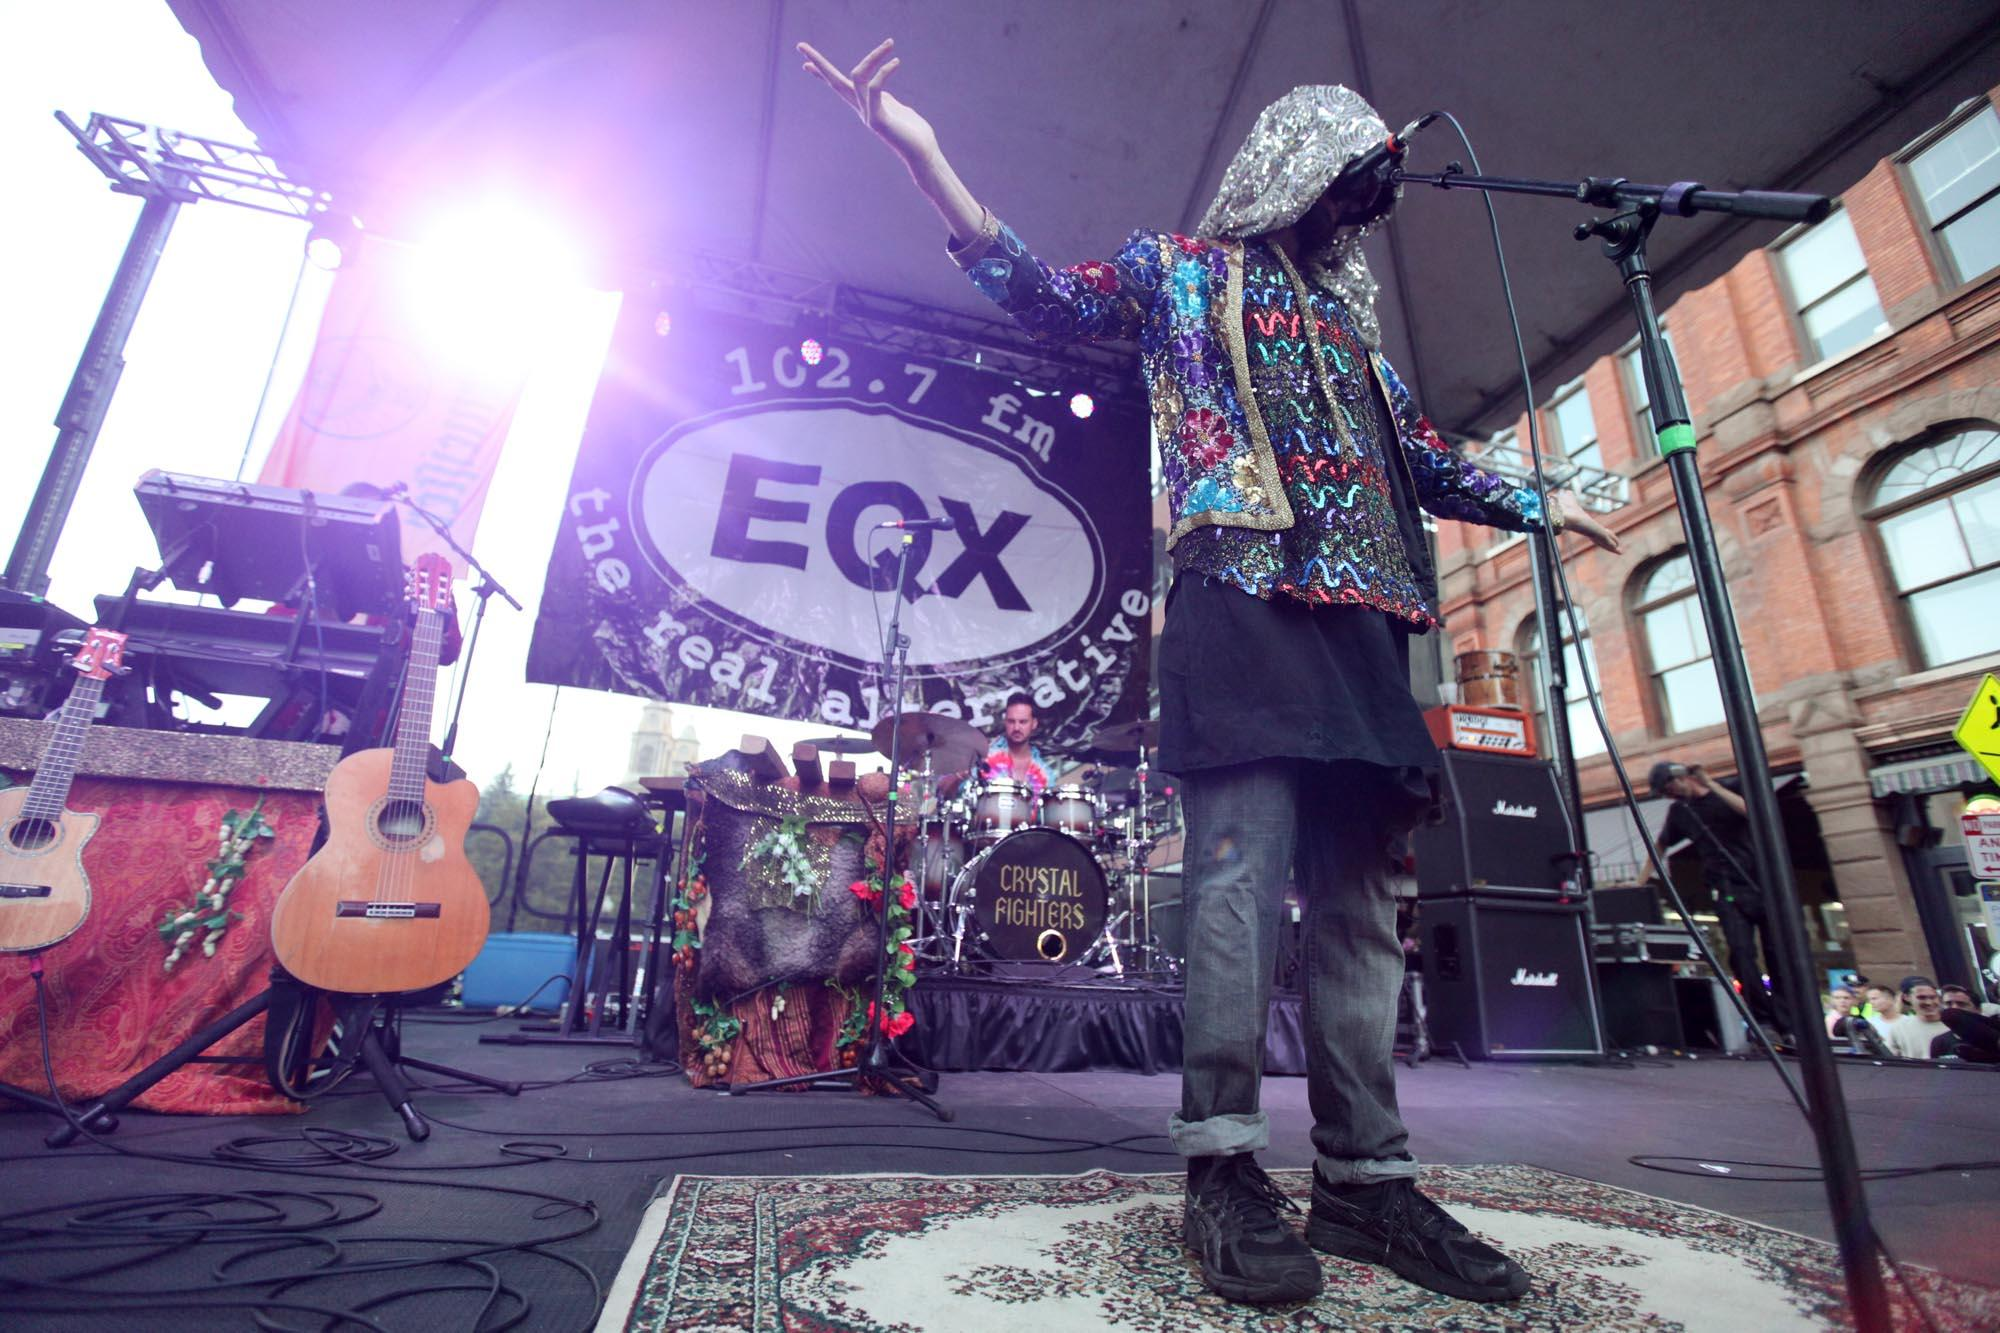 A Love Affair with Local Radio Station WEQX and the Powerhouse Acts That Perform Upstate